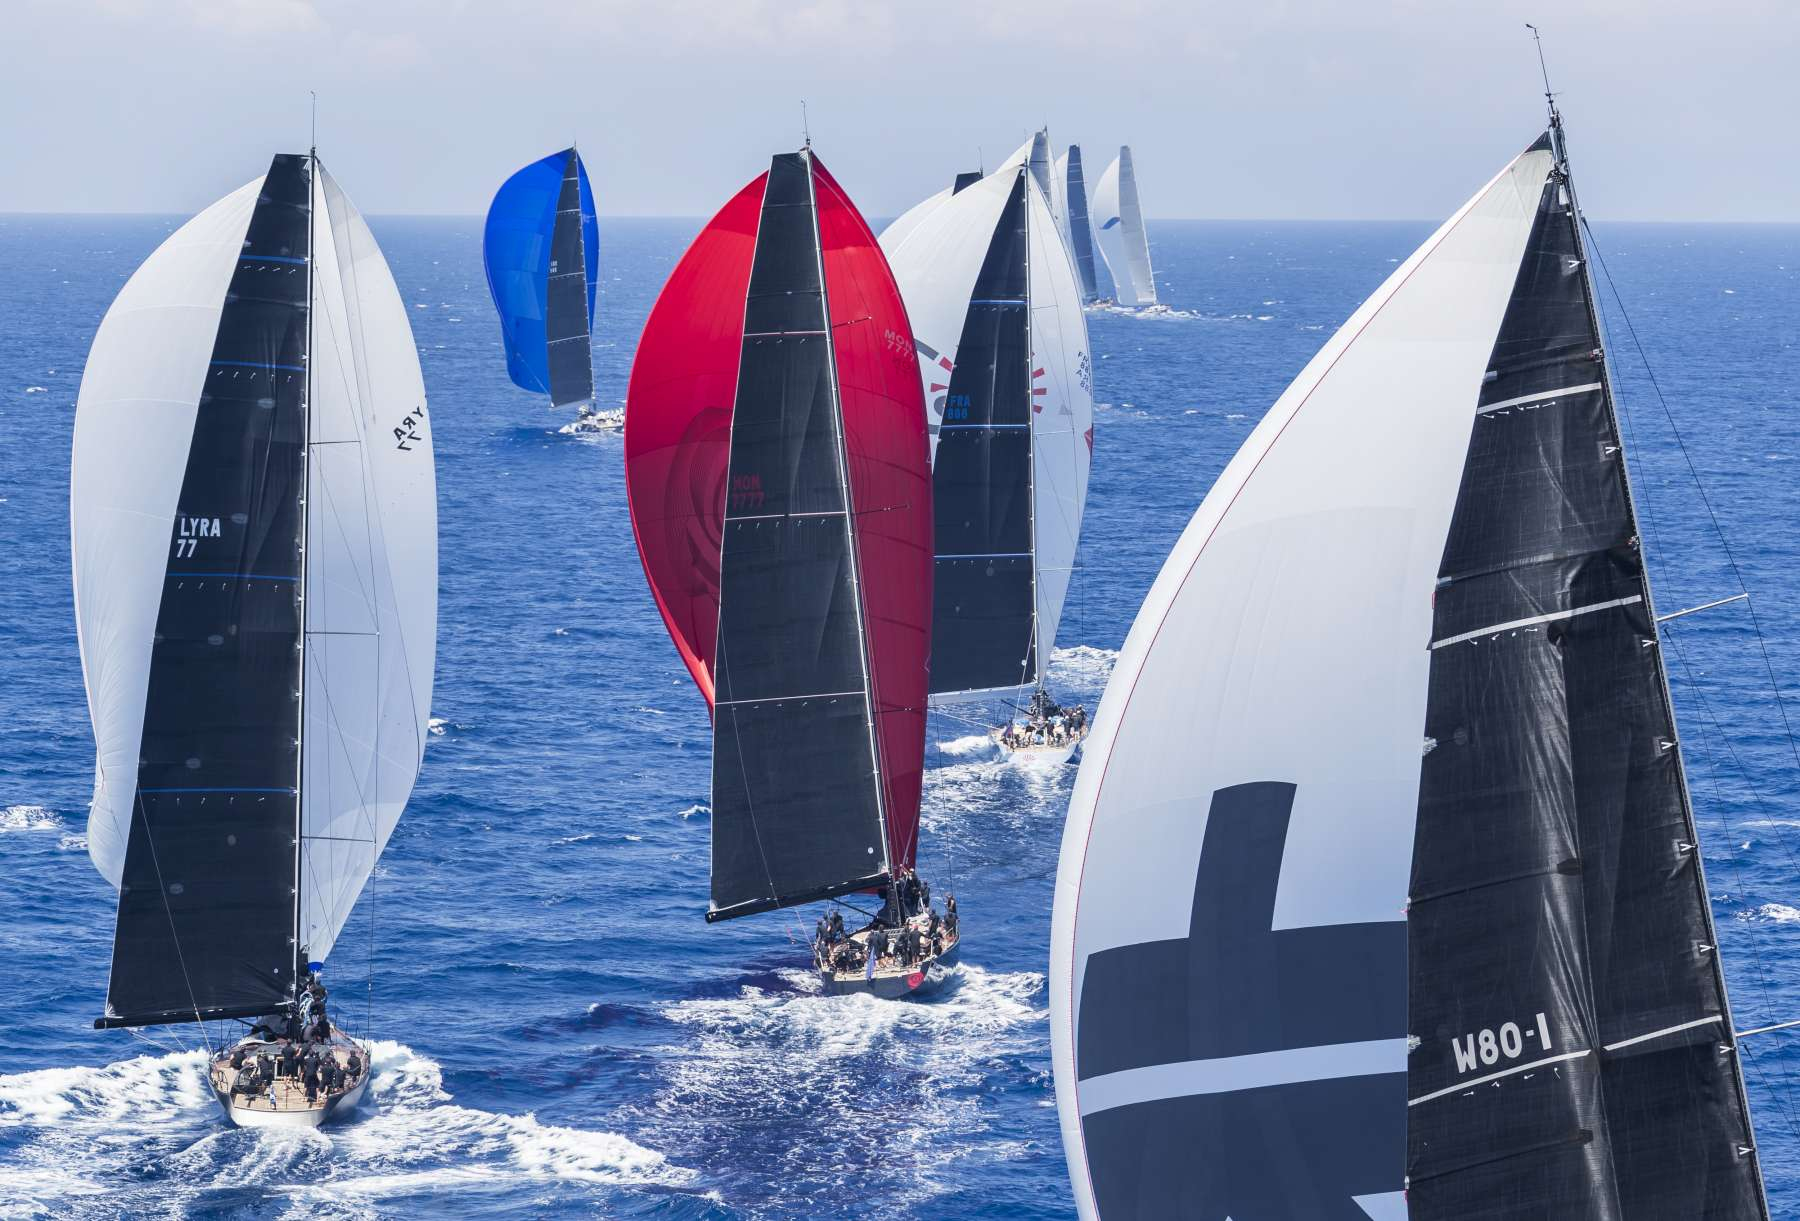 Notice of Race for the Superyacht Regatta 2018 now online - NEWS - Yacht Club Costa Smeralda